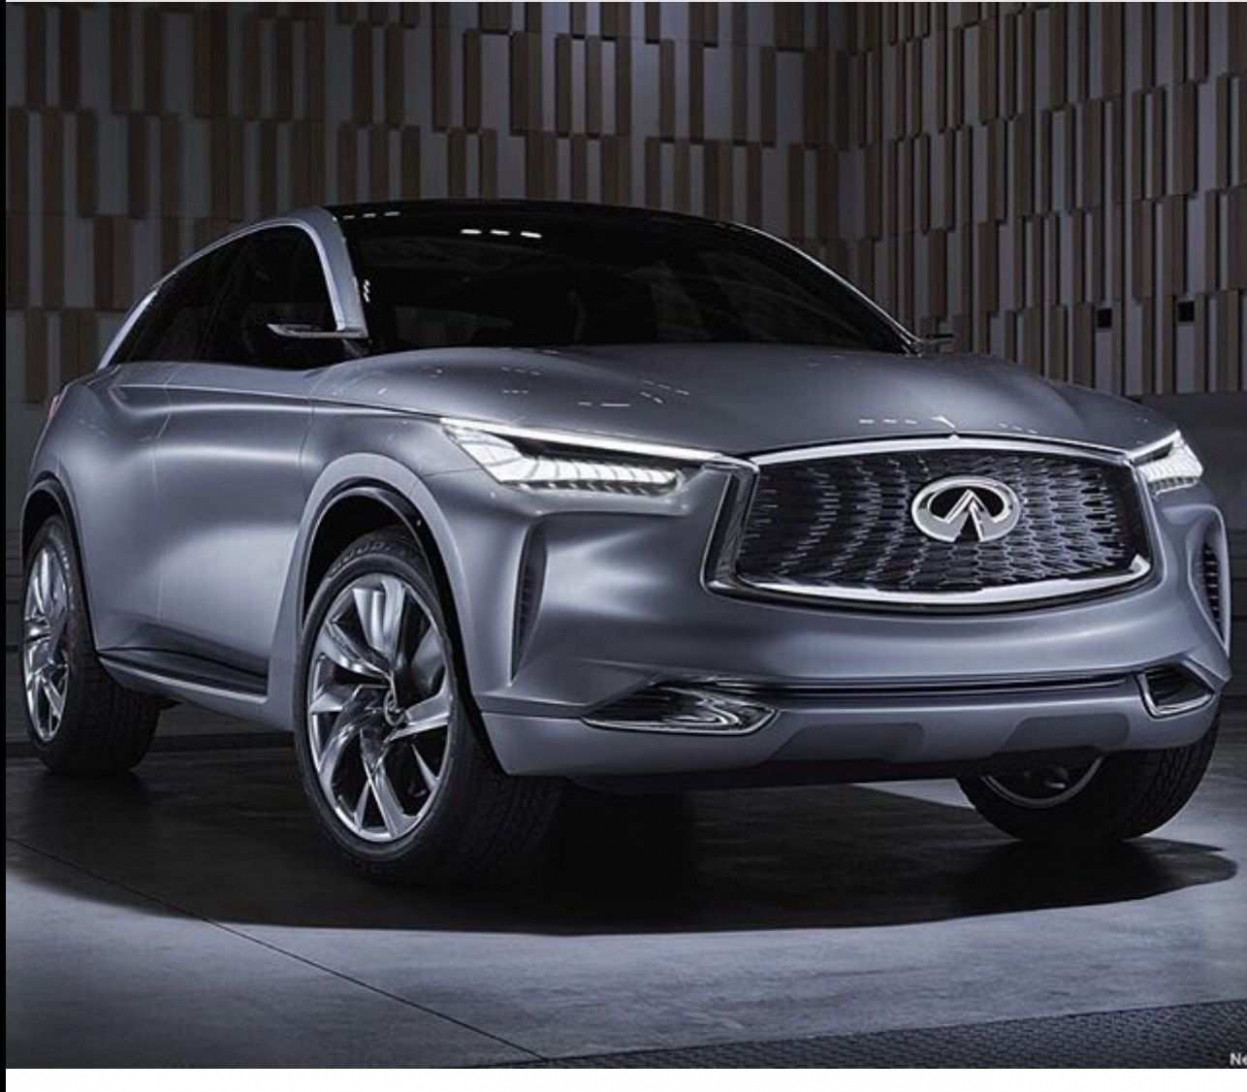 8 Gallery of 8 Infiniti Fx8 Performance and New Engine for ...